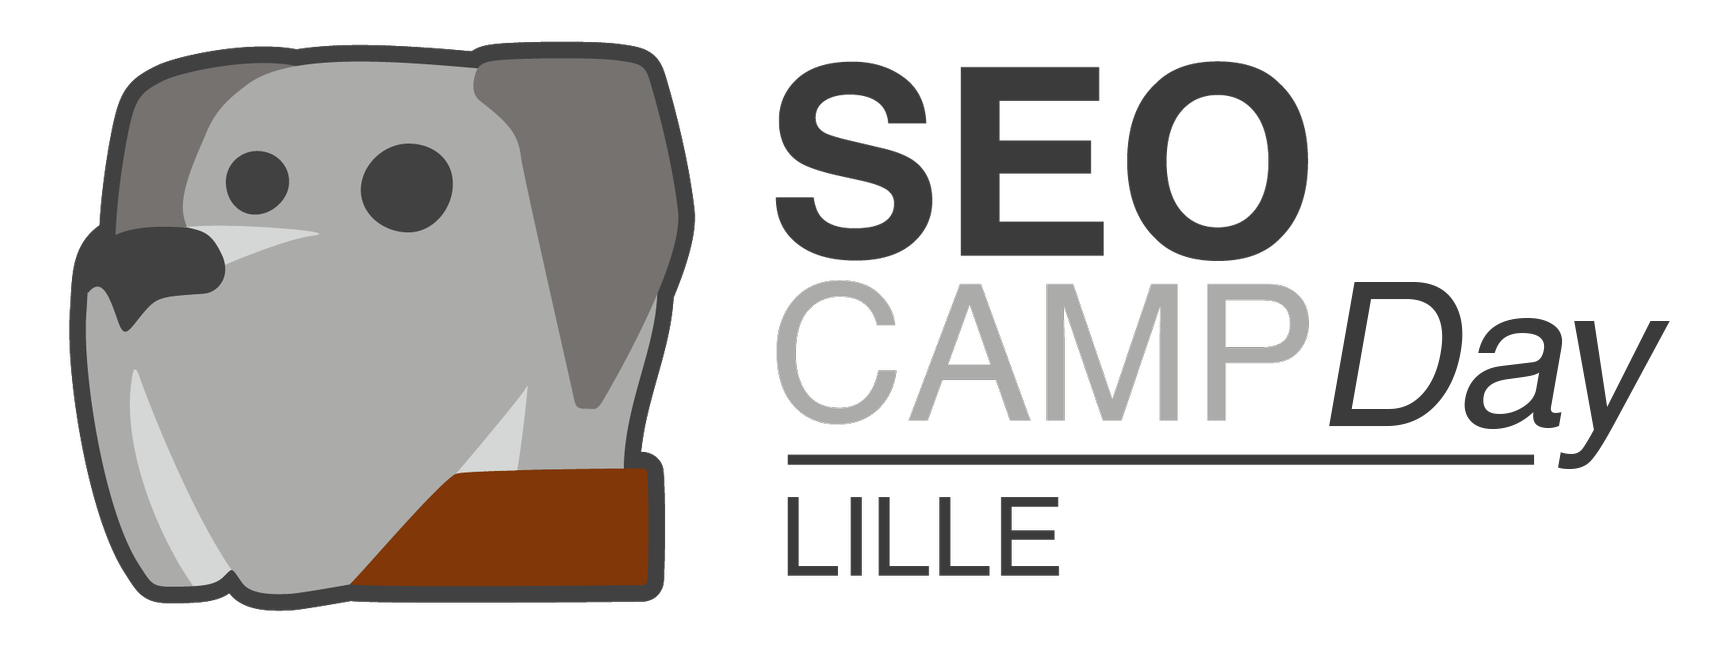 SEO CAMP DAY LILLE 2020